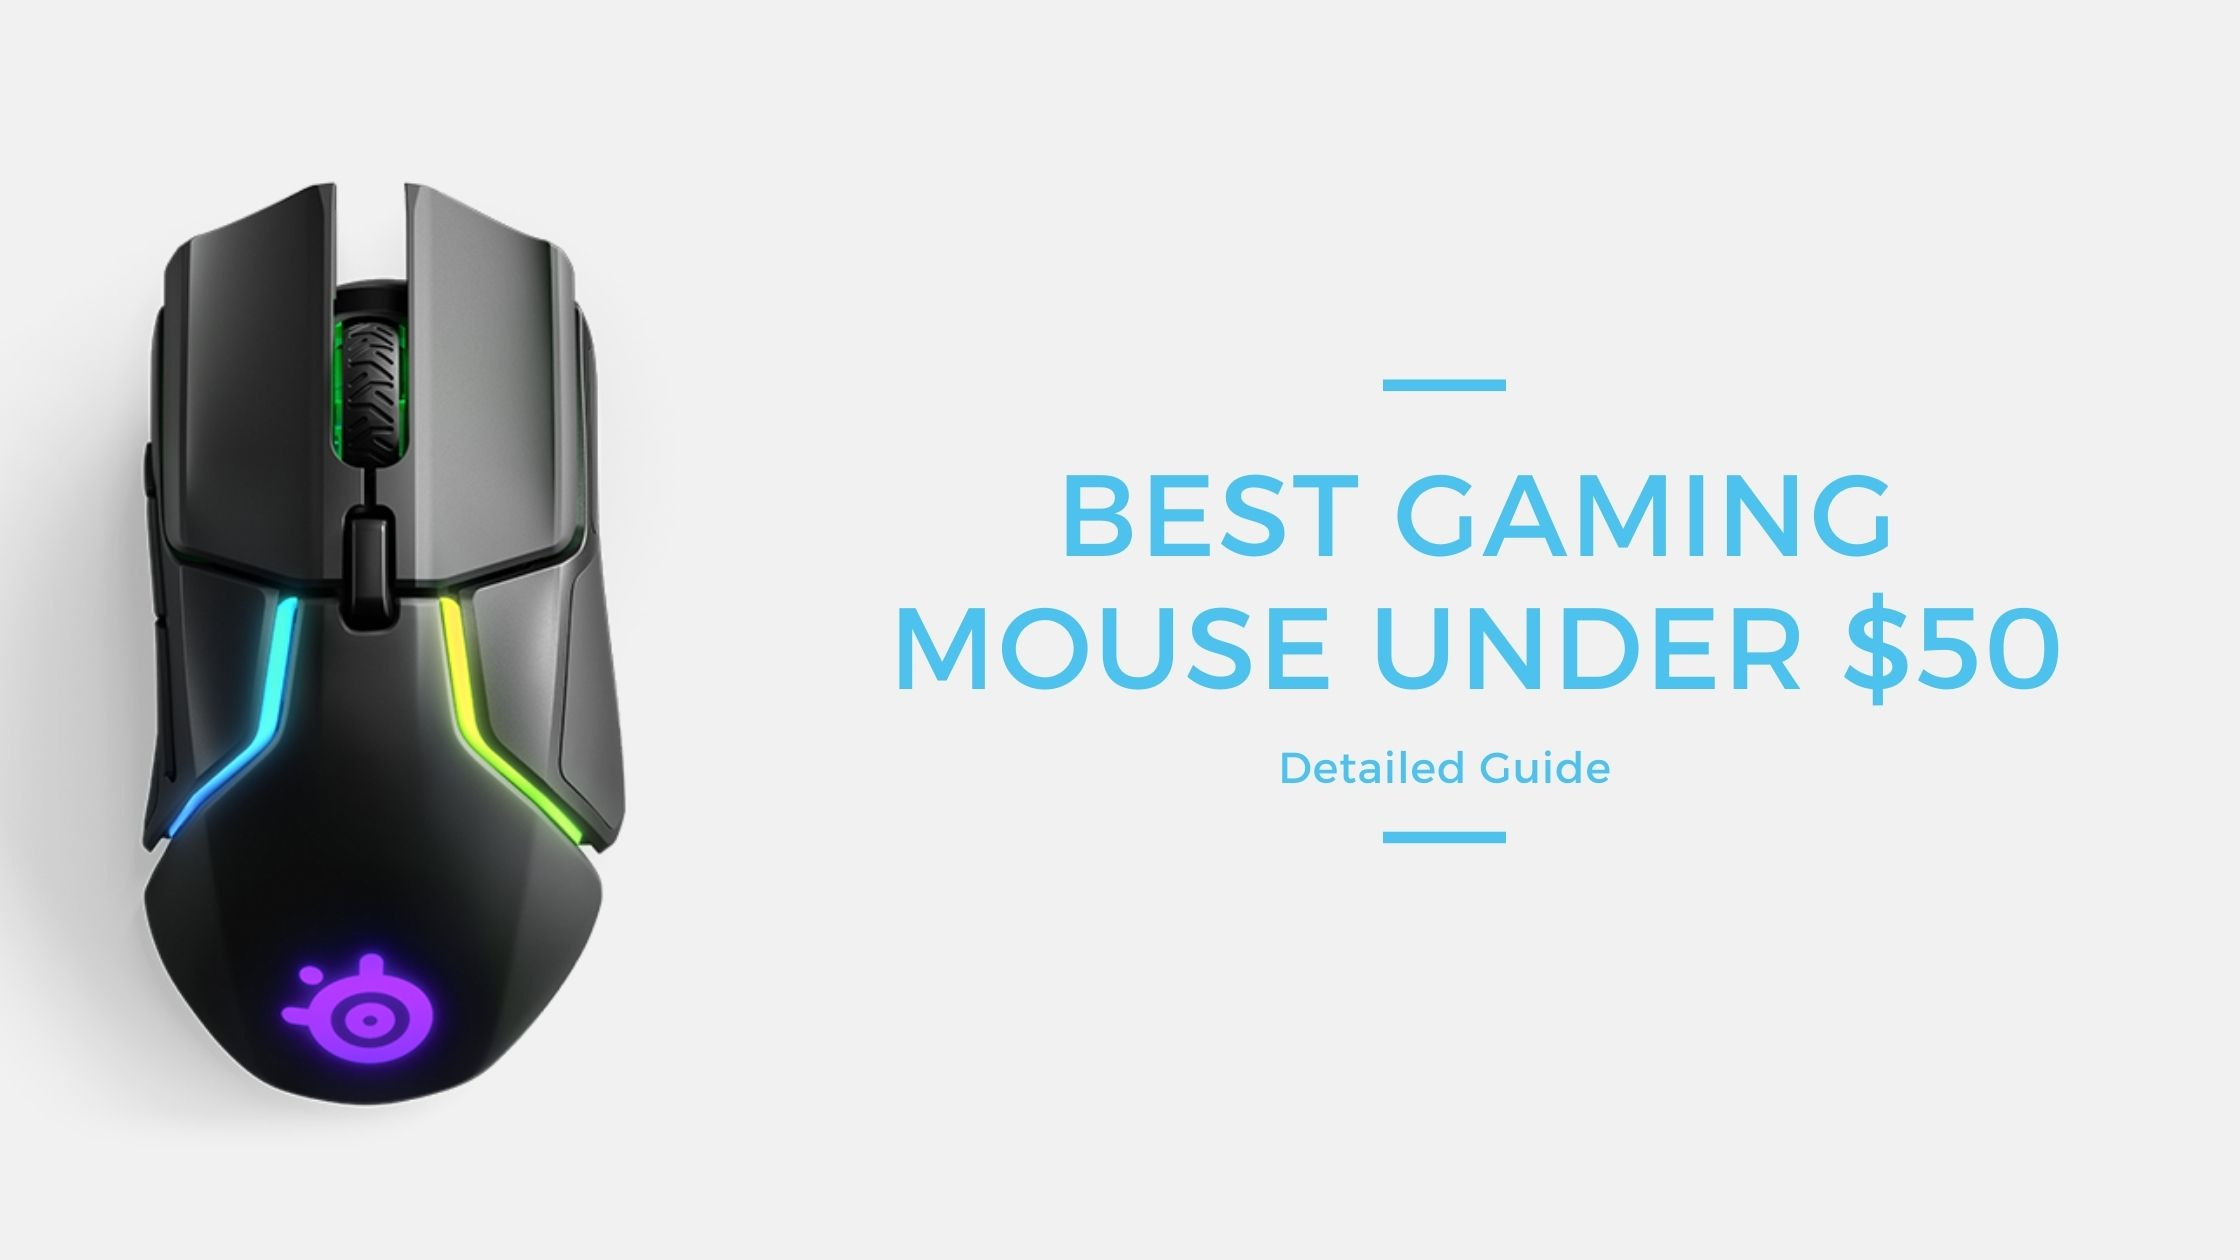 Top 10 Best Gaming Mouse